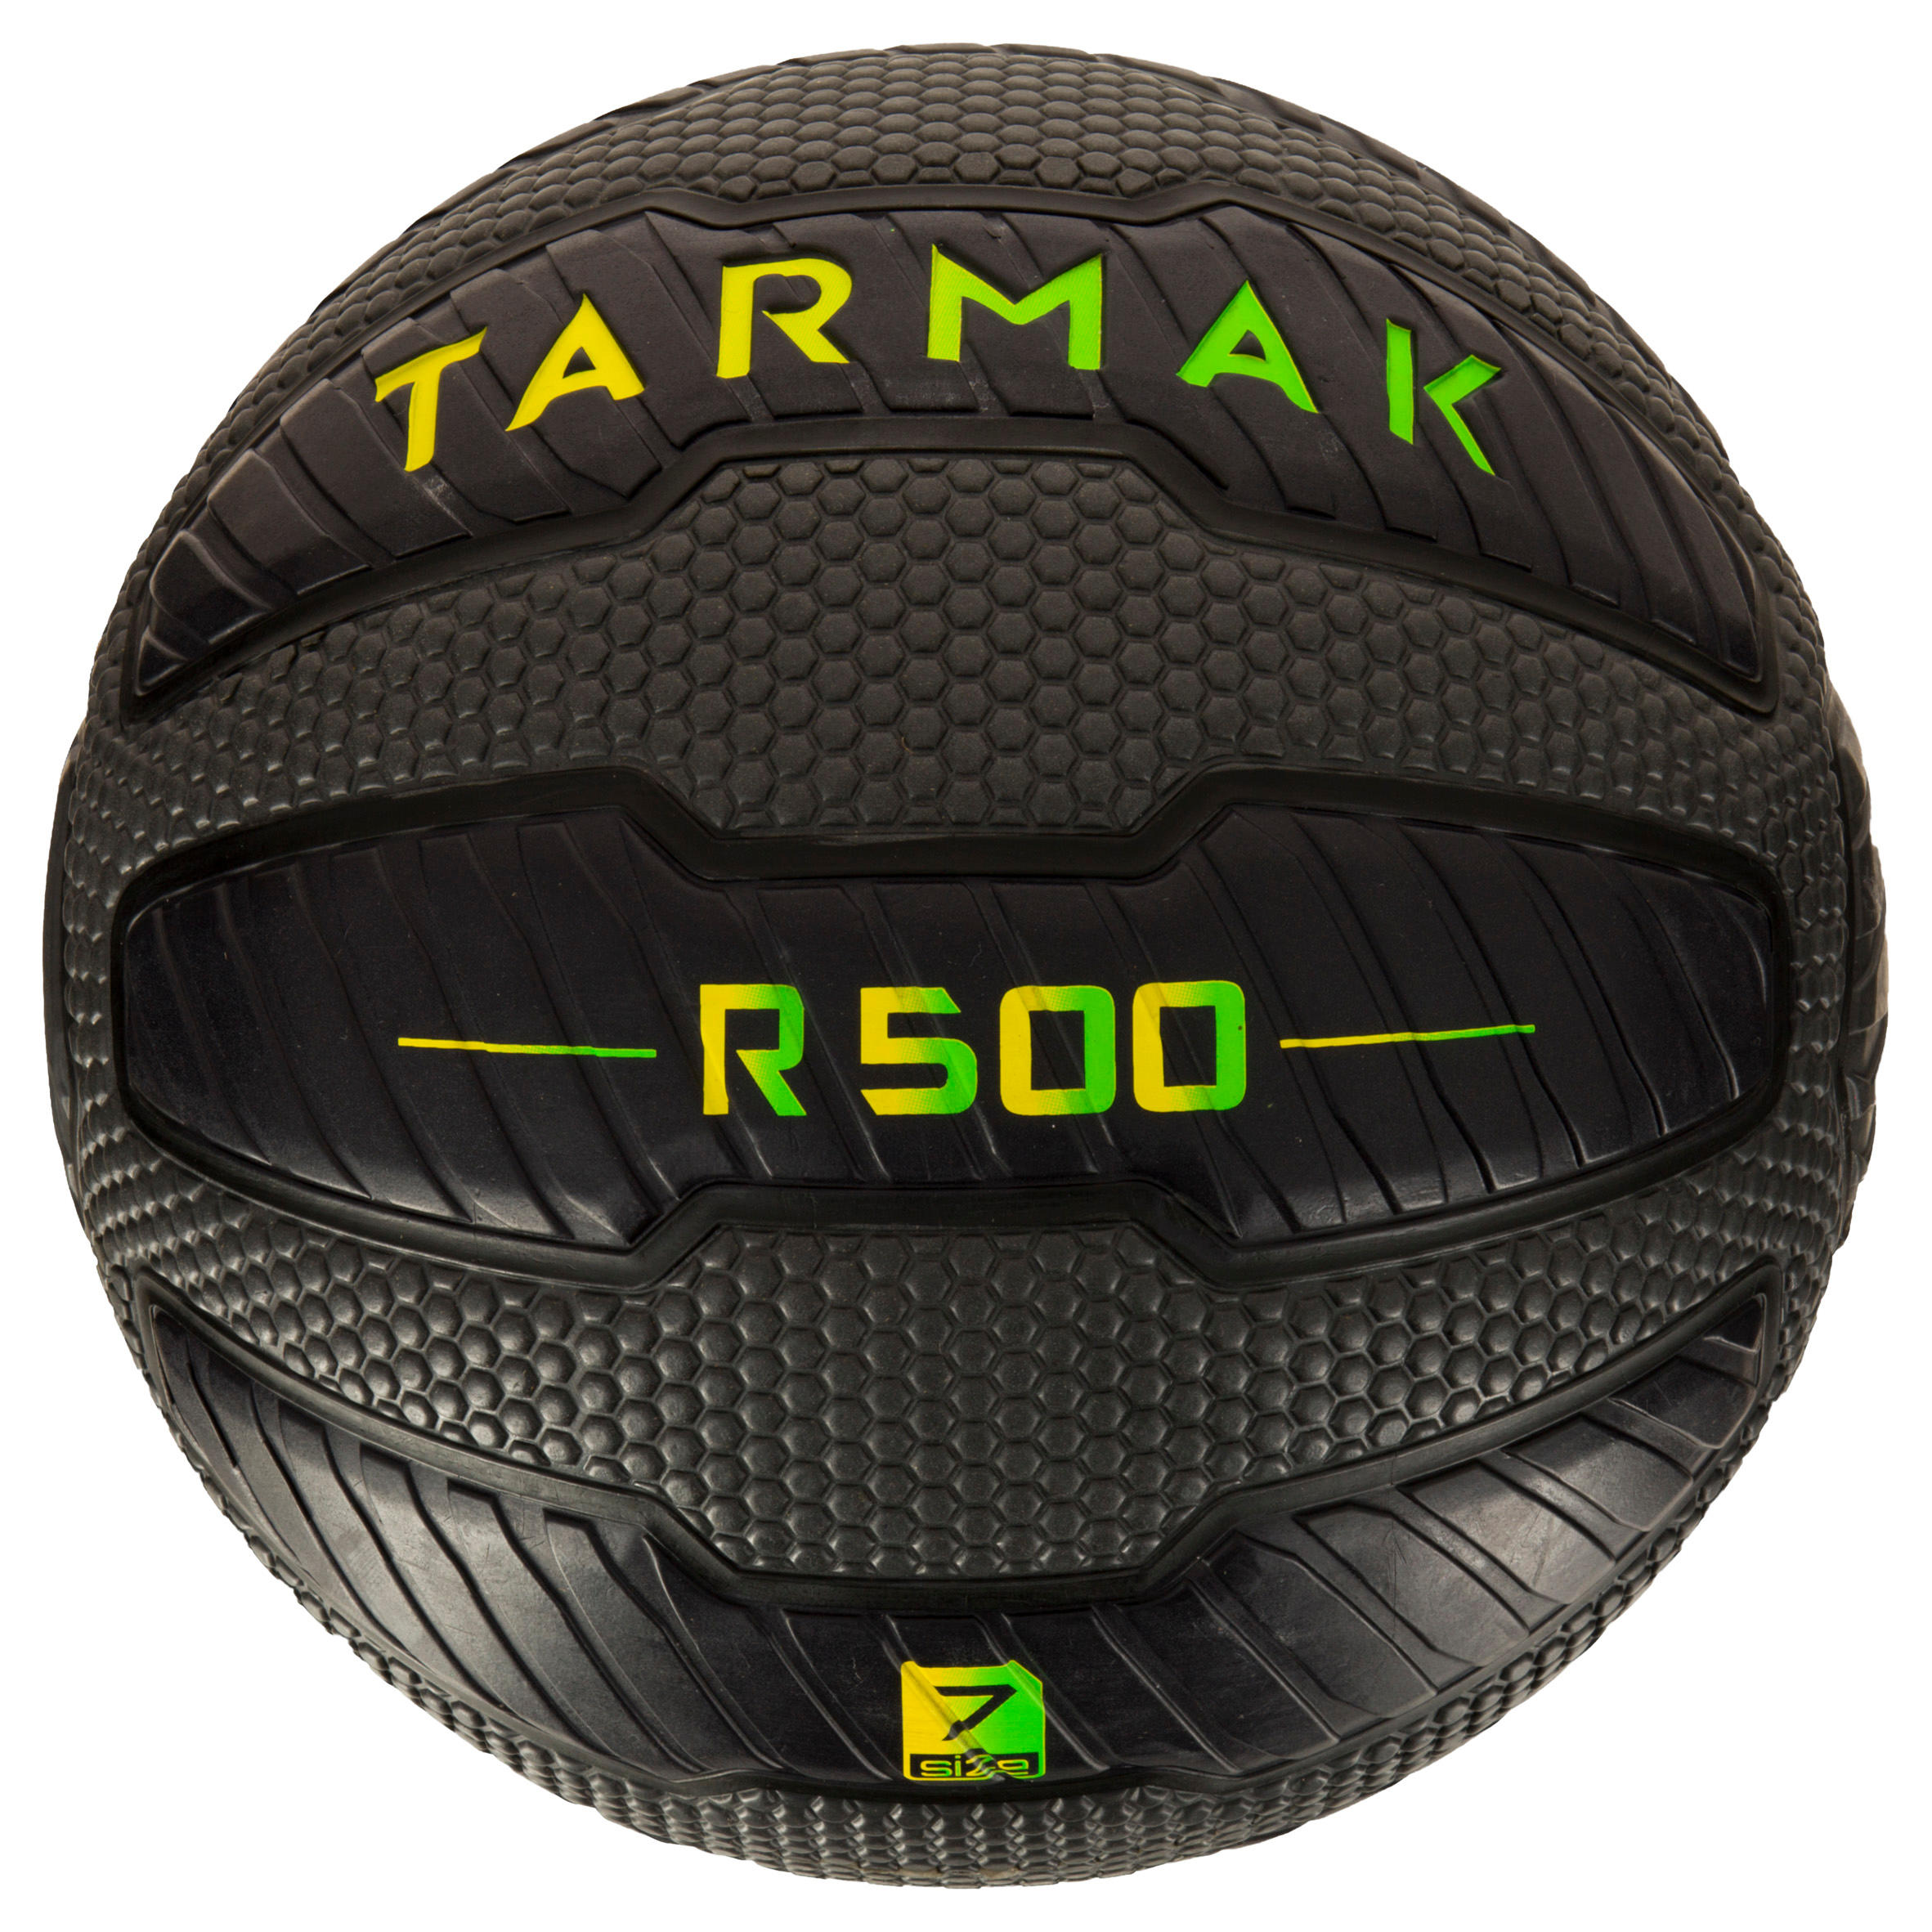 Balón de basquetbol adulto Tarmak 500 Magic Jam talla 7 negro